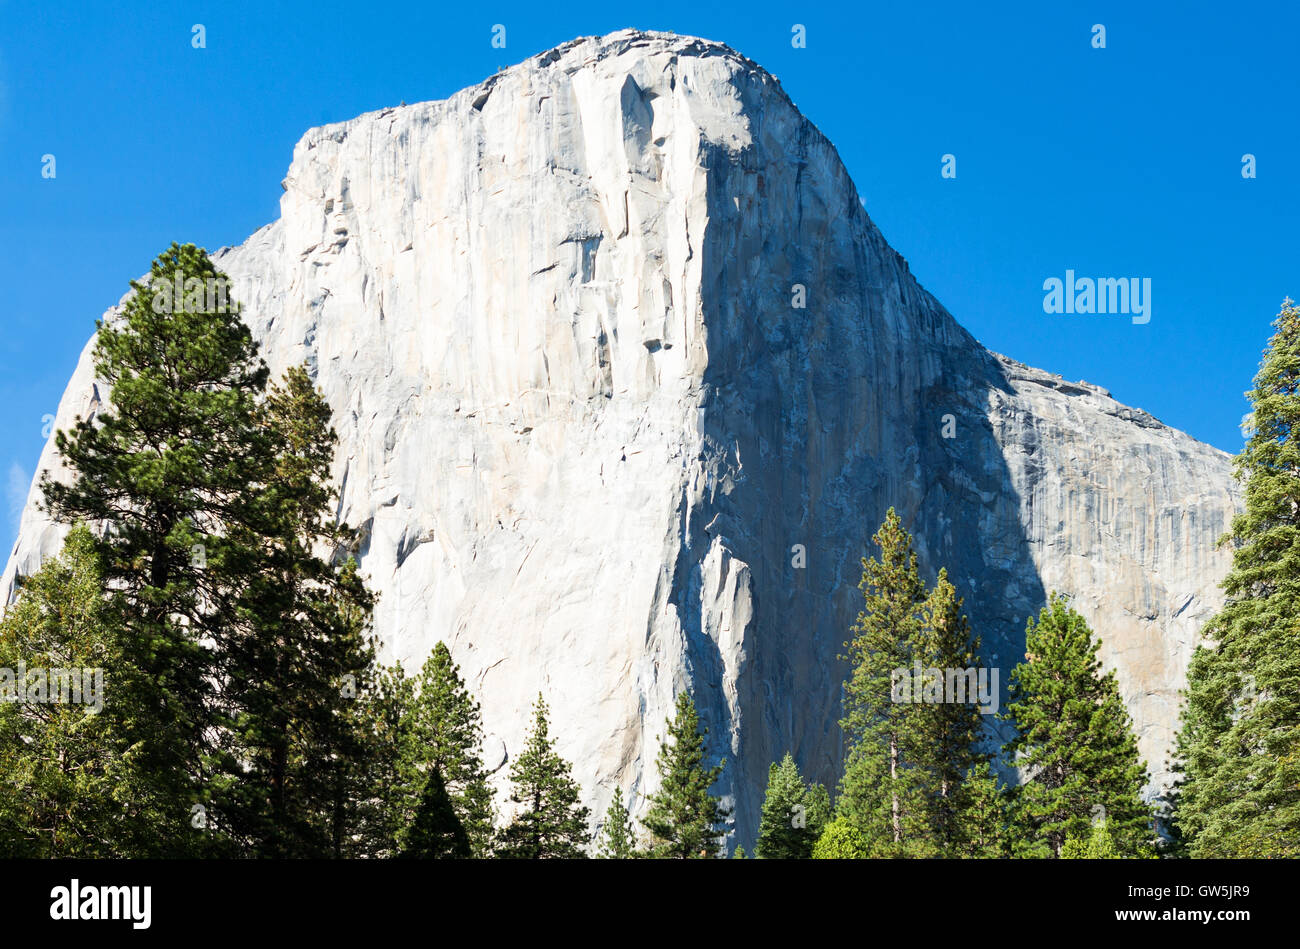 Yosemite National Park, California, the white El capitan mountain - Stock Image